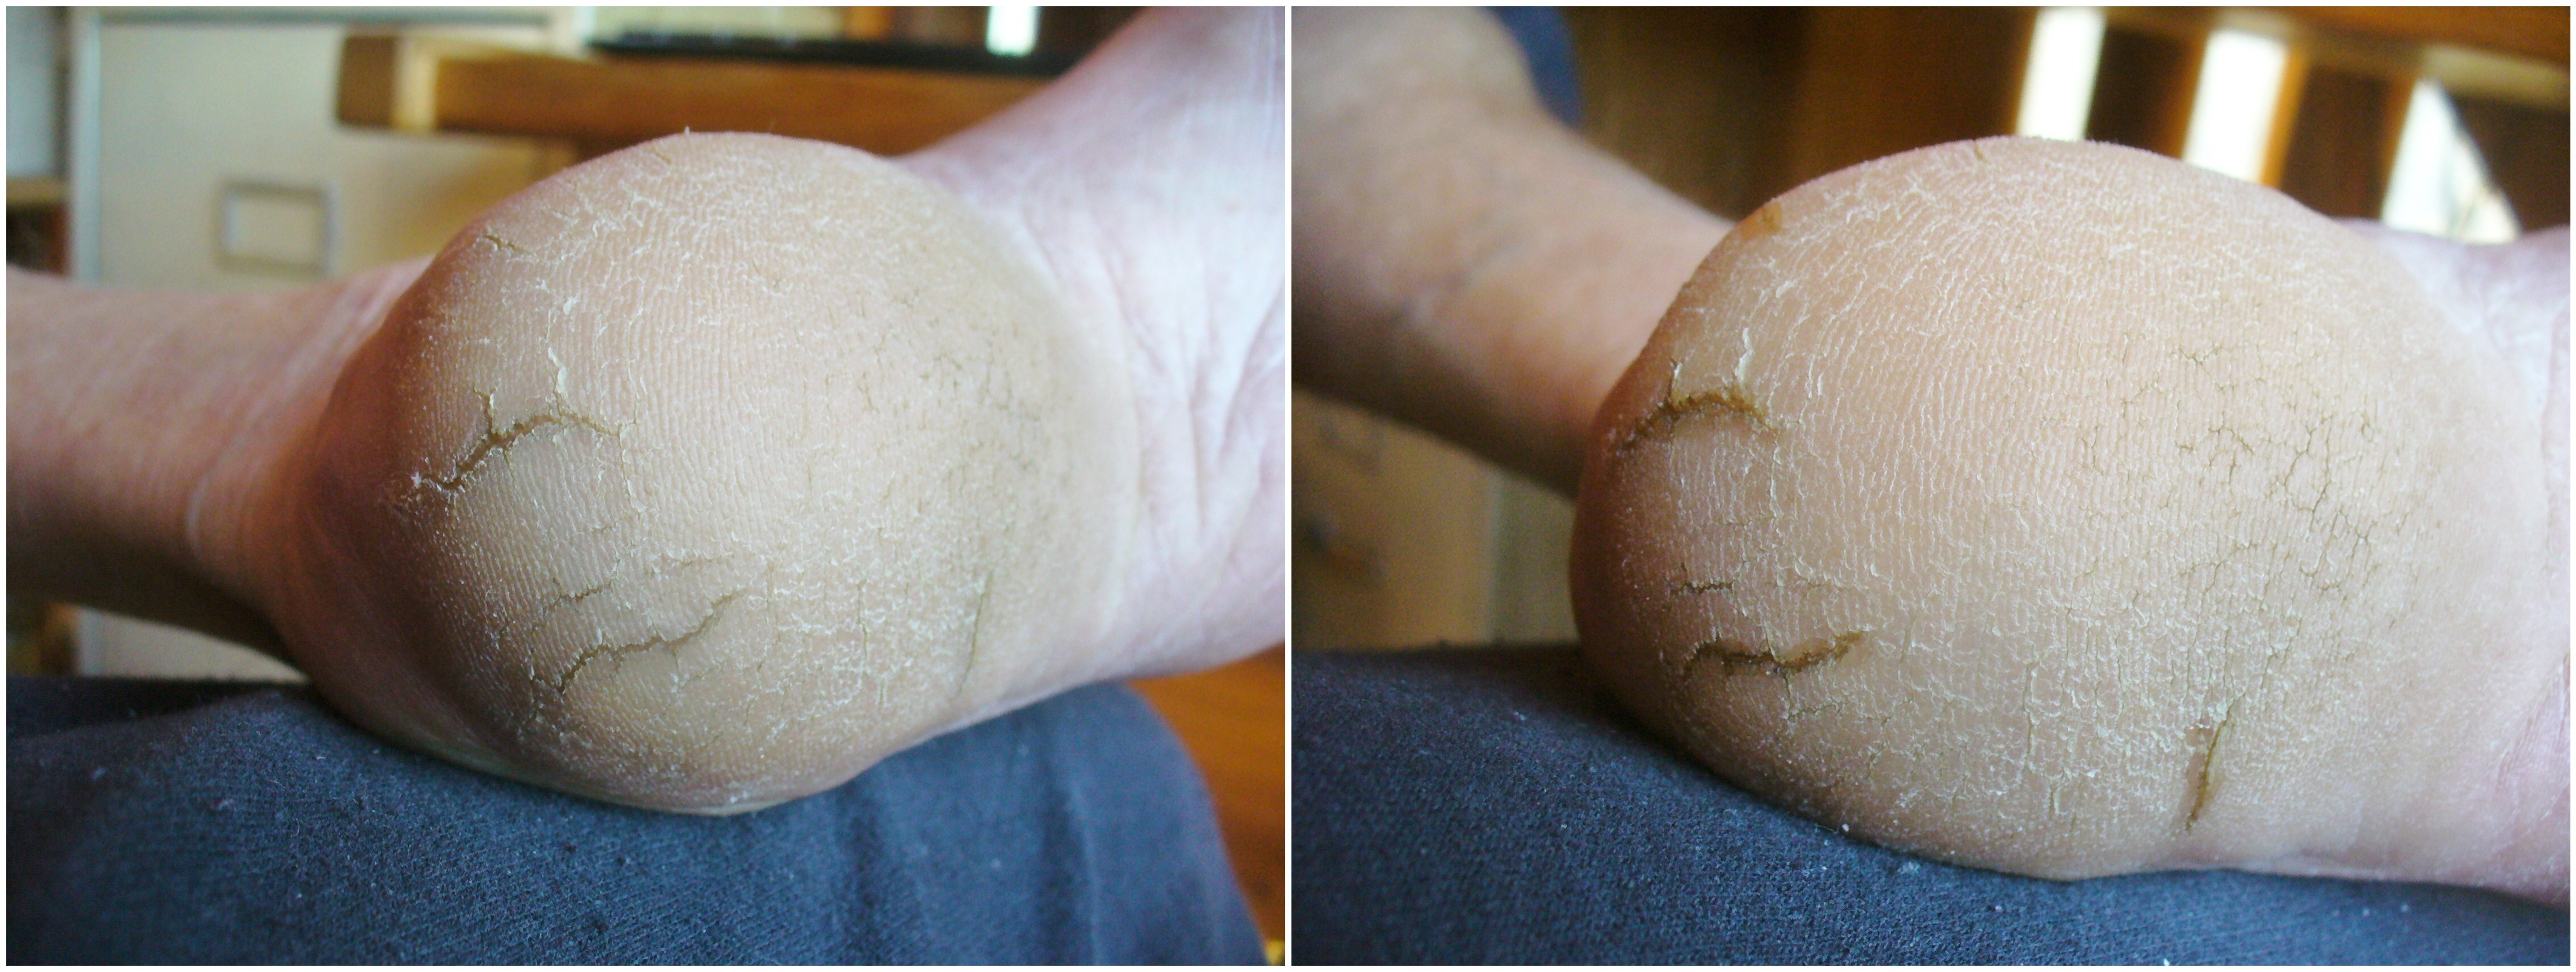 Minor heel cracks before and after gluing